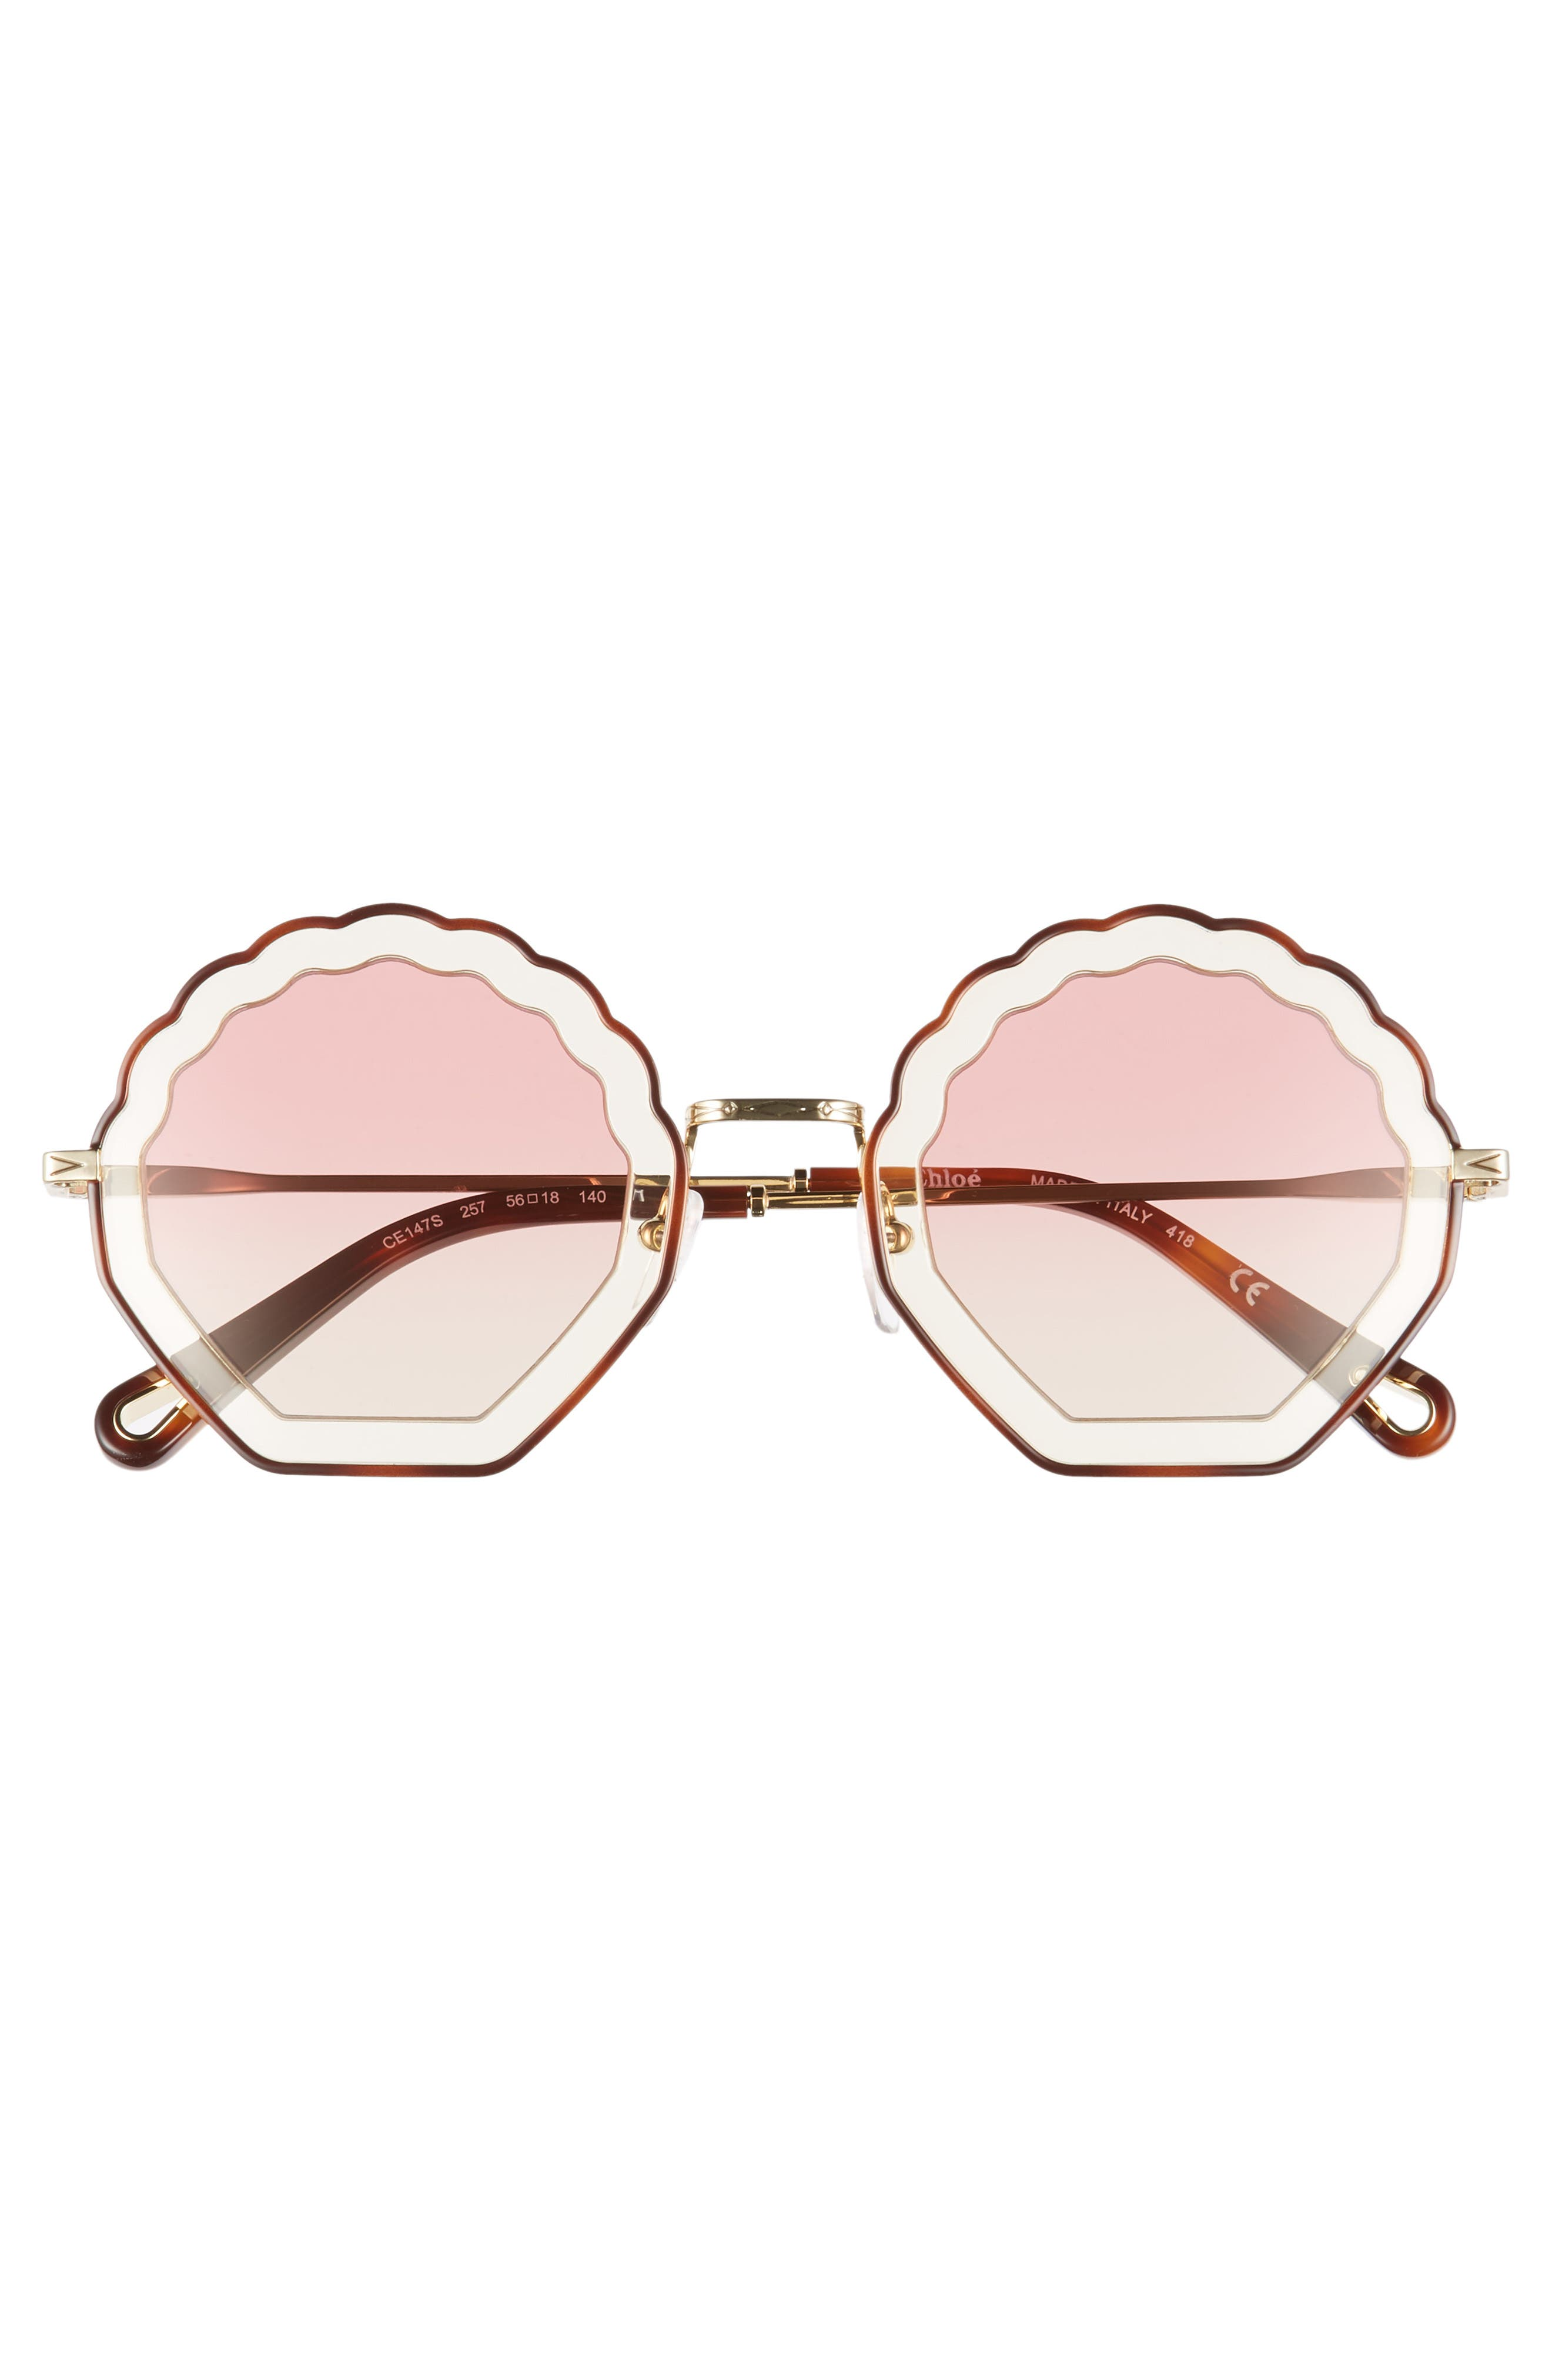 Tally 56mm Scalloped Sunglasses,                             Alternate thumbnail 3, color,                             HAVANA/ SAND/ GRADIENT ROSE